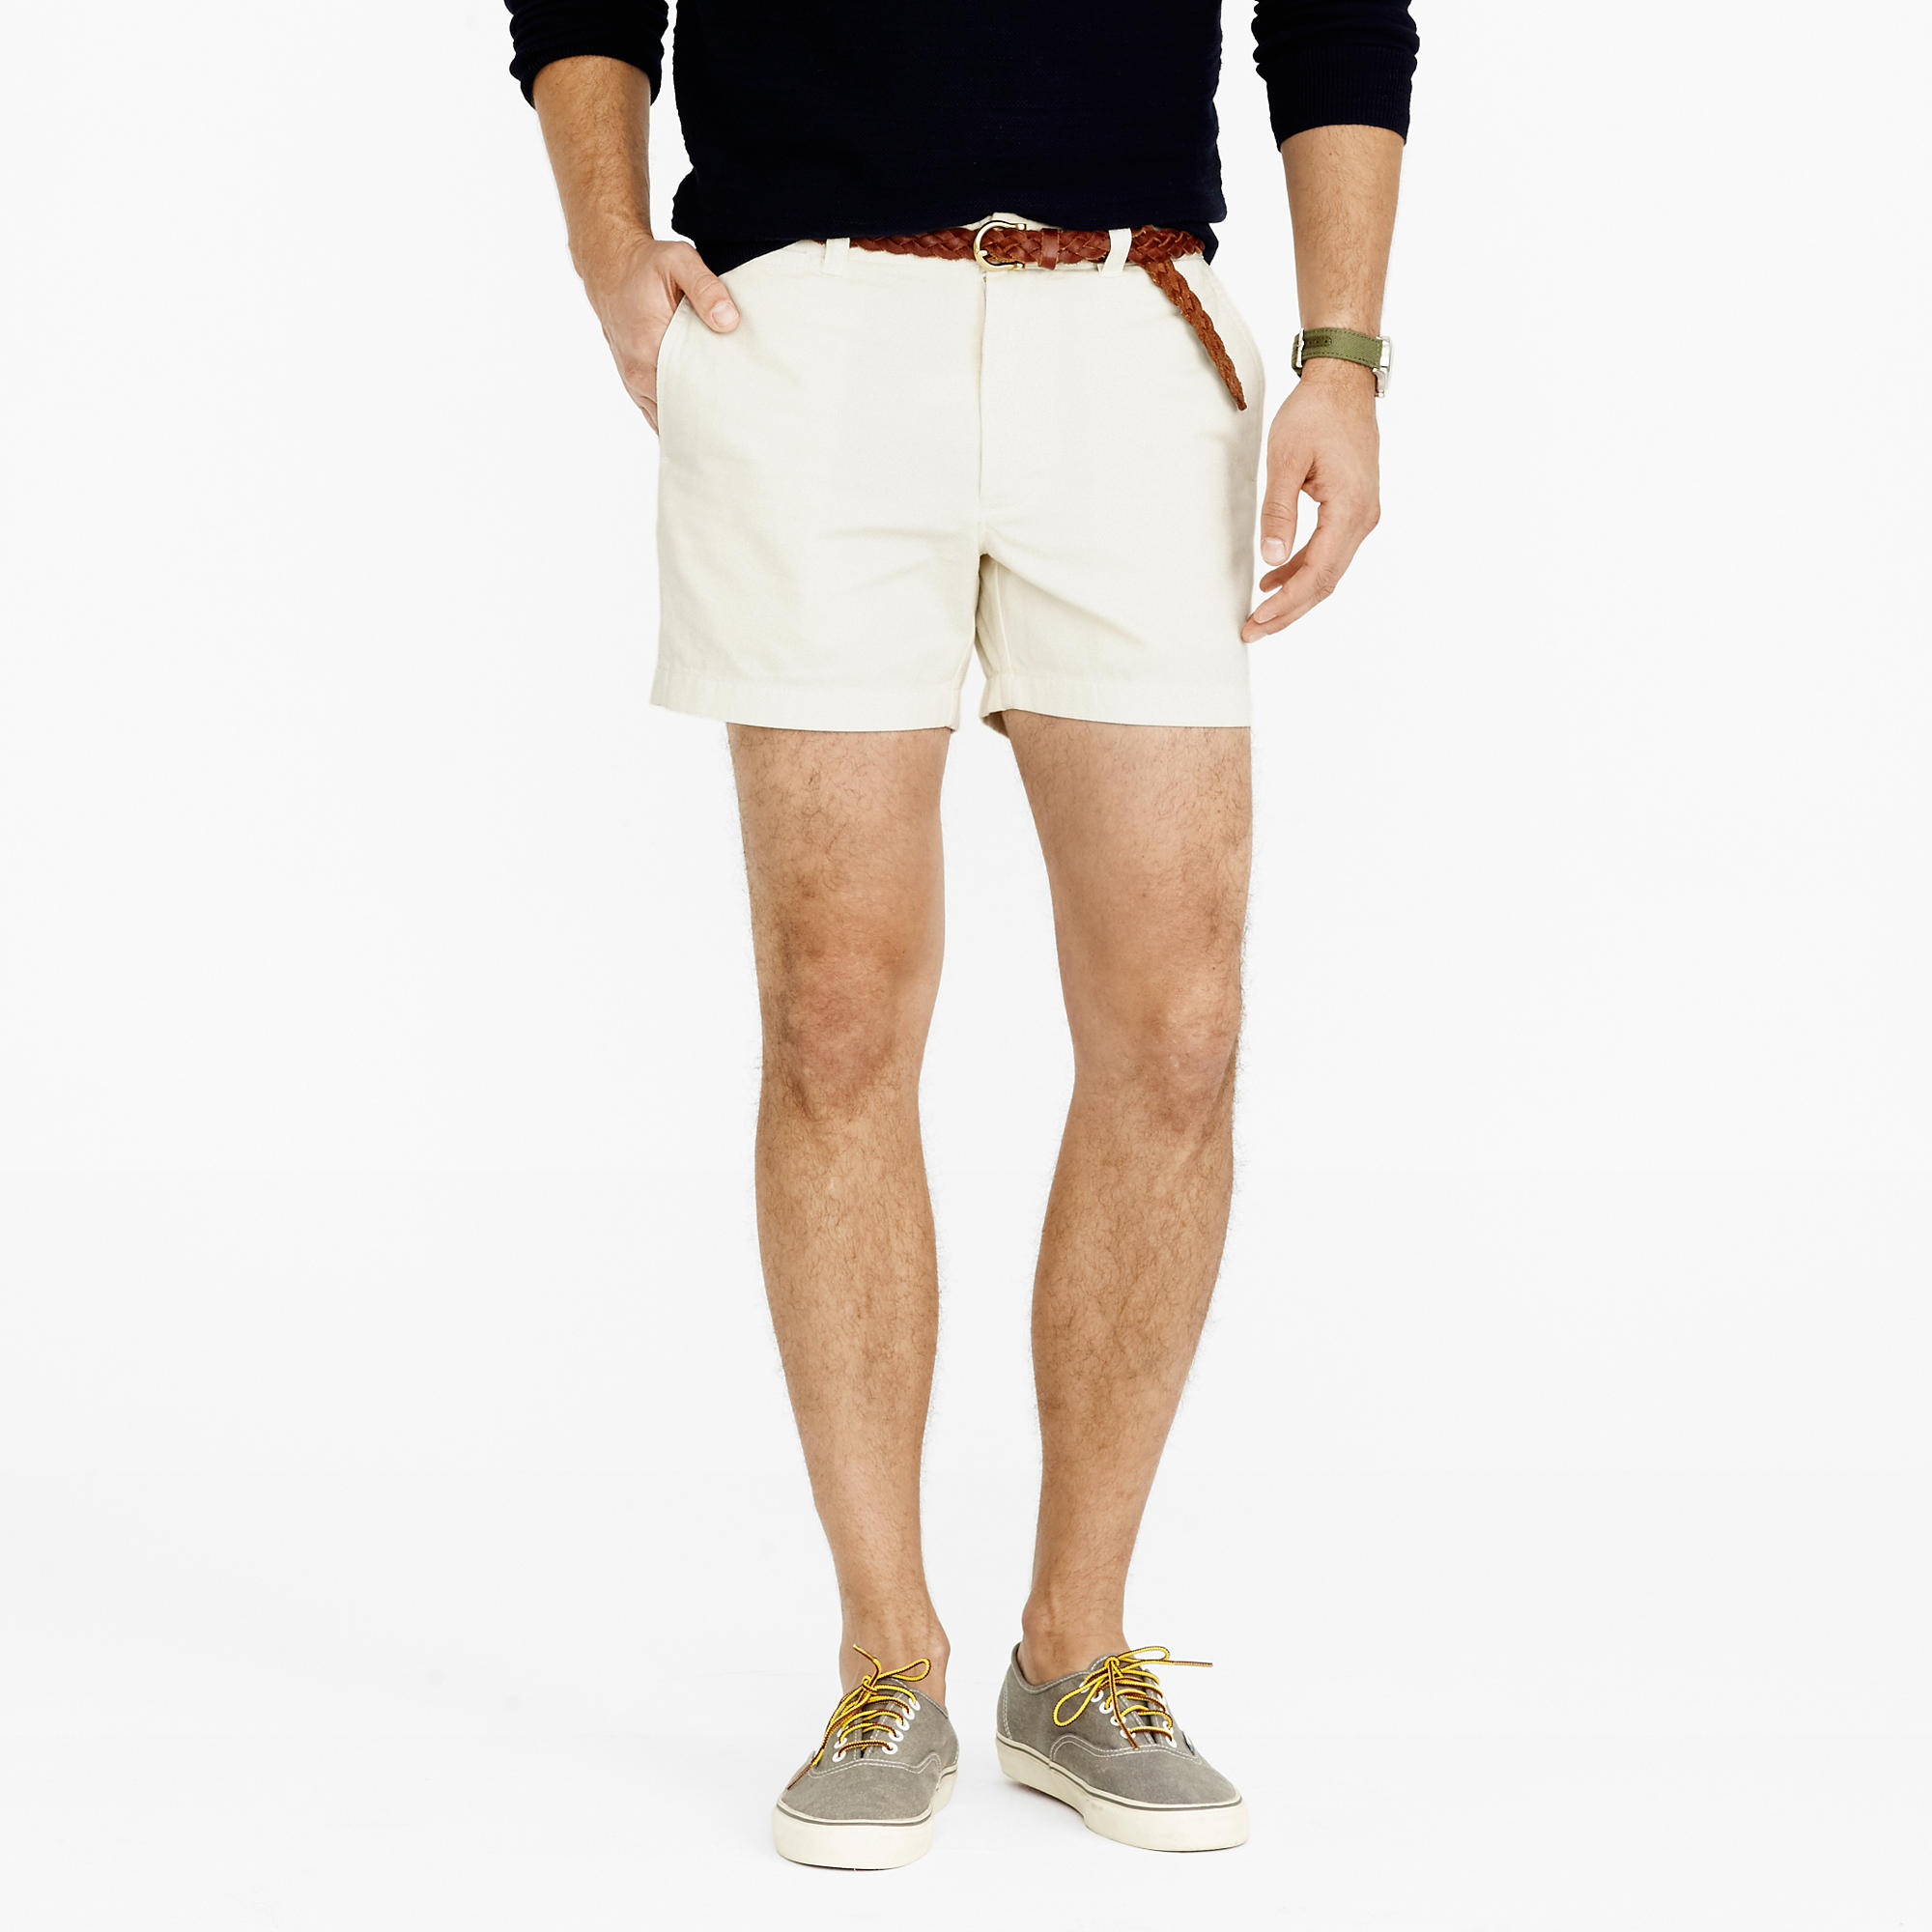 Men's Shorts. We currently have mens casual shorts and work shorts from Carhartt, Columbia, Dickies and Levis Strauss. A heavyweight, rugged ounce % top quality cotton duck Work Short with an inch inseam. Good for warmer weather, but built for work. Save 38% $ $ $ B